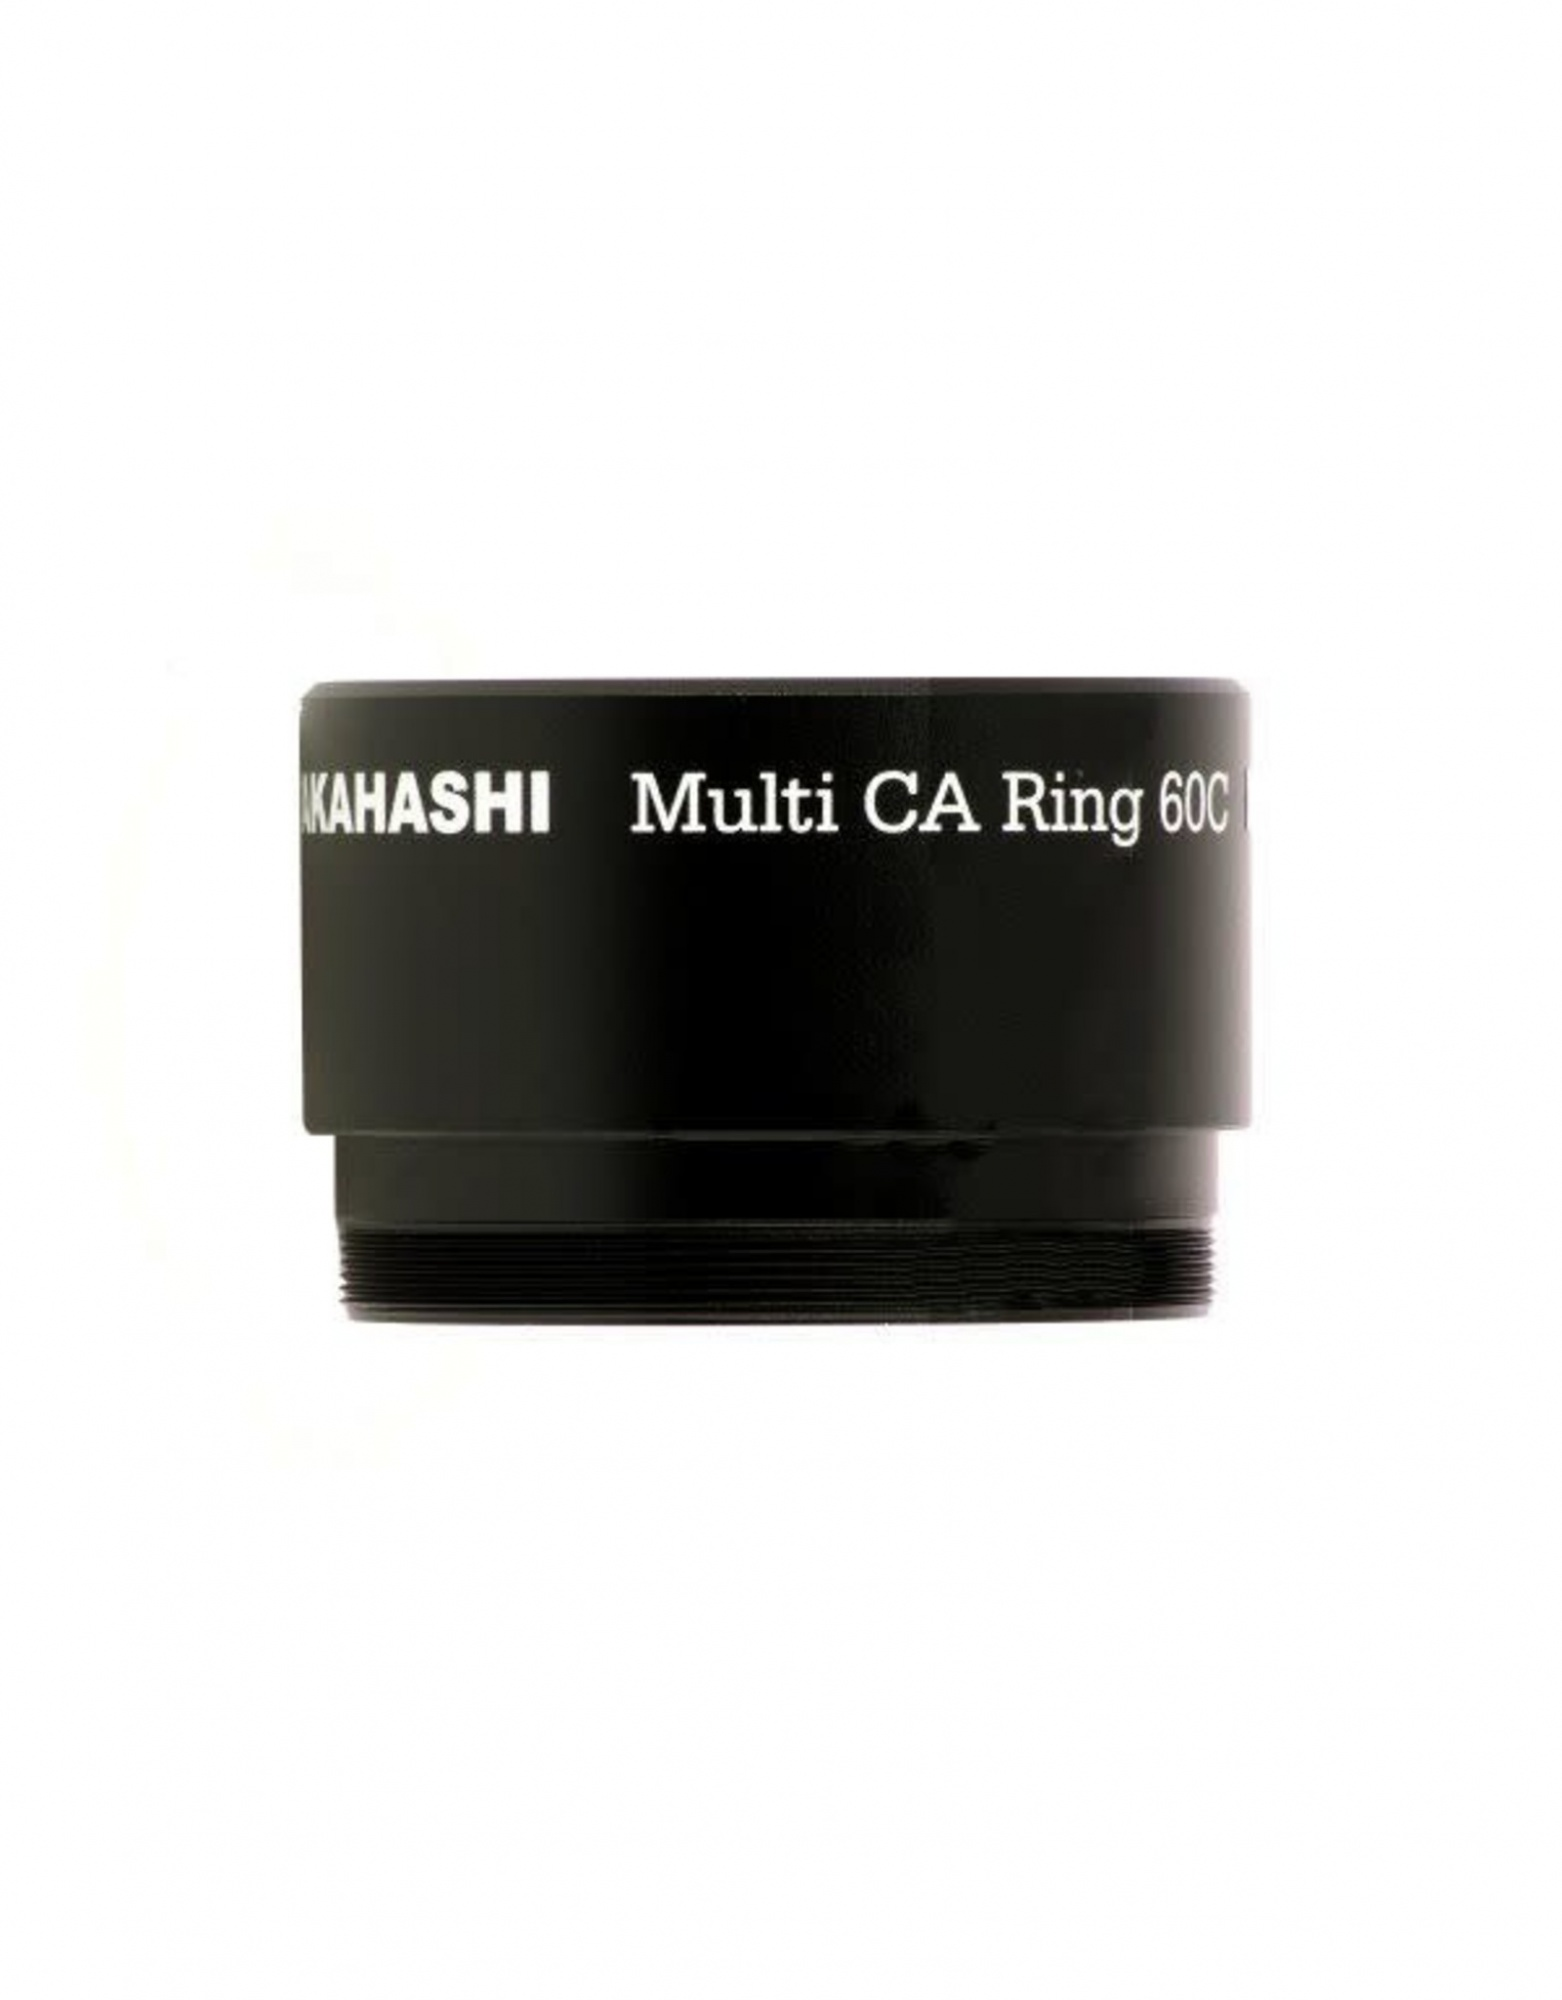 Takahashi Multi CA ring 60C for use with FS-60CB and Multi Flattener